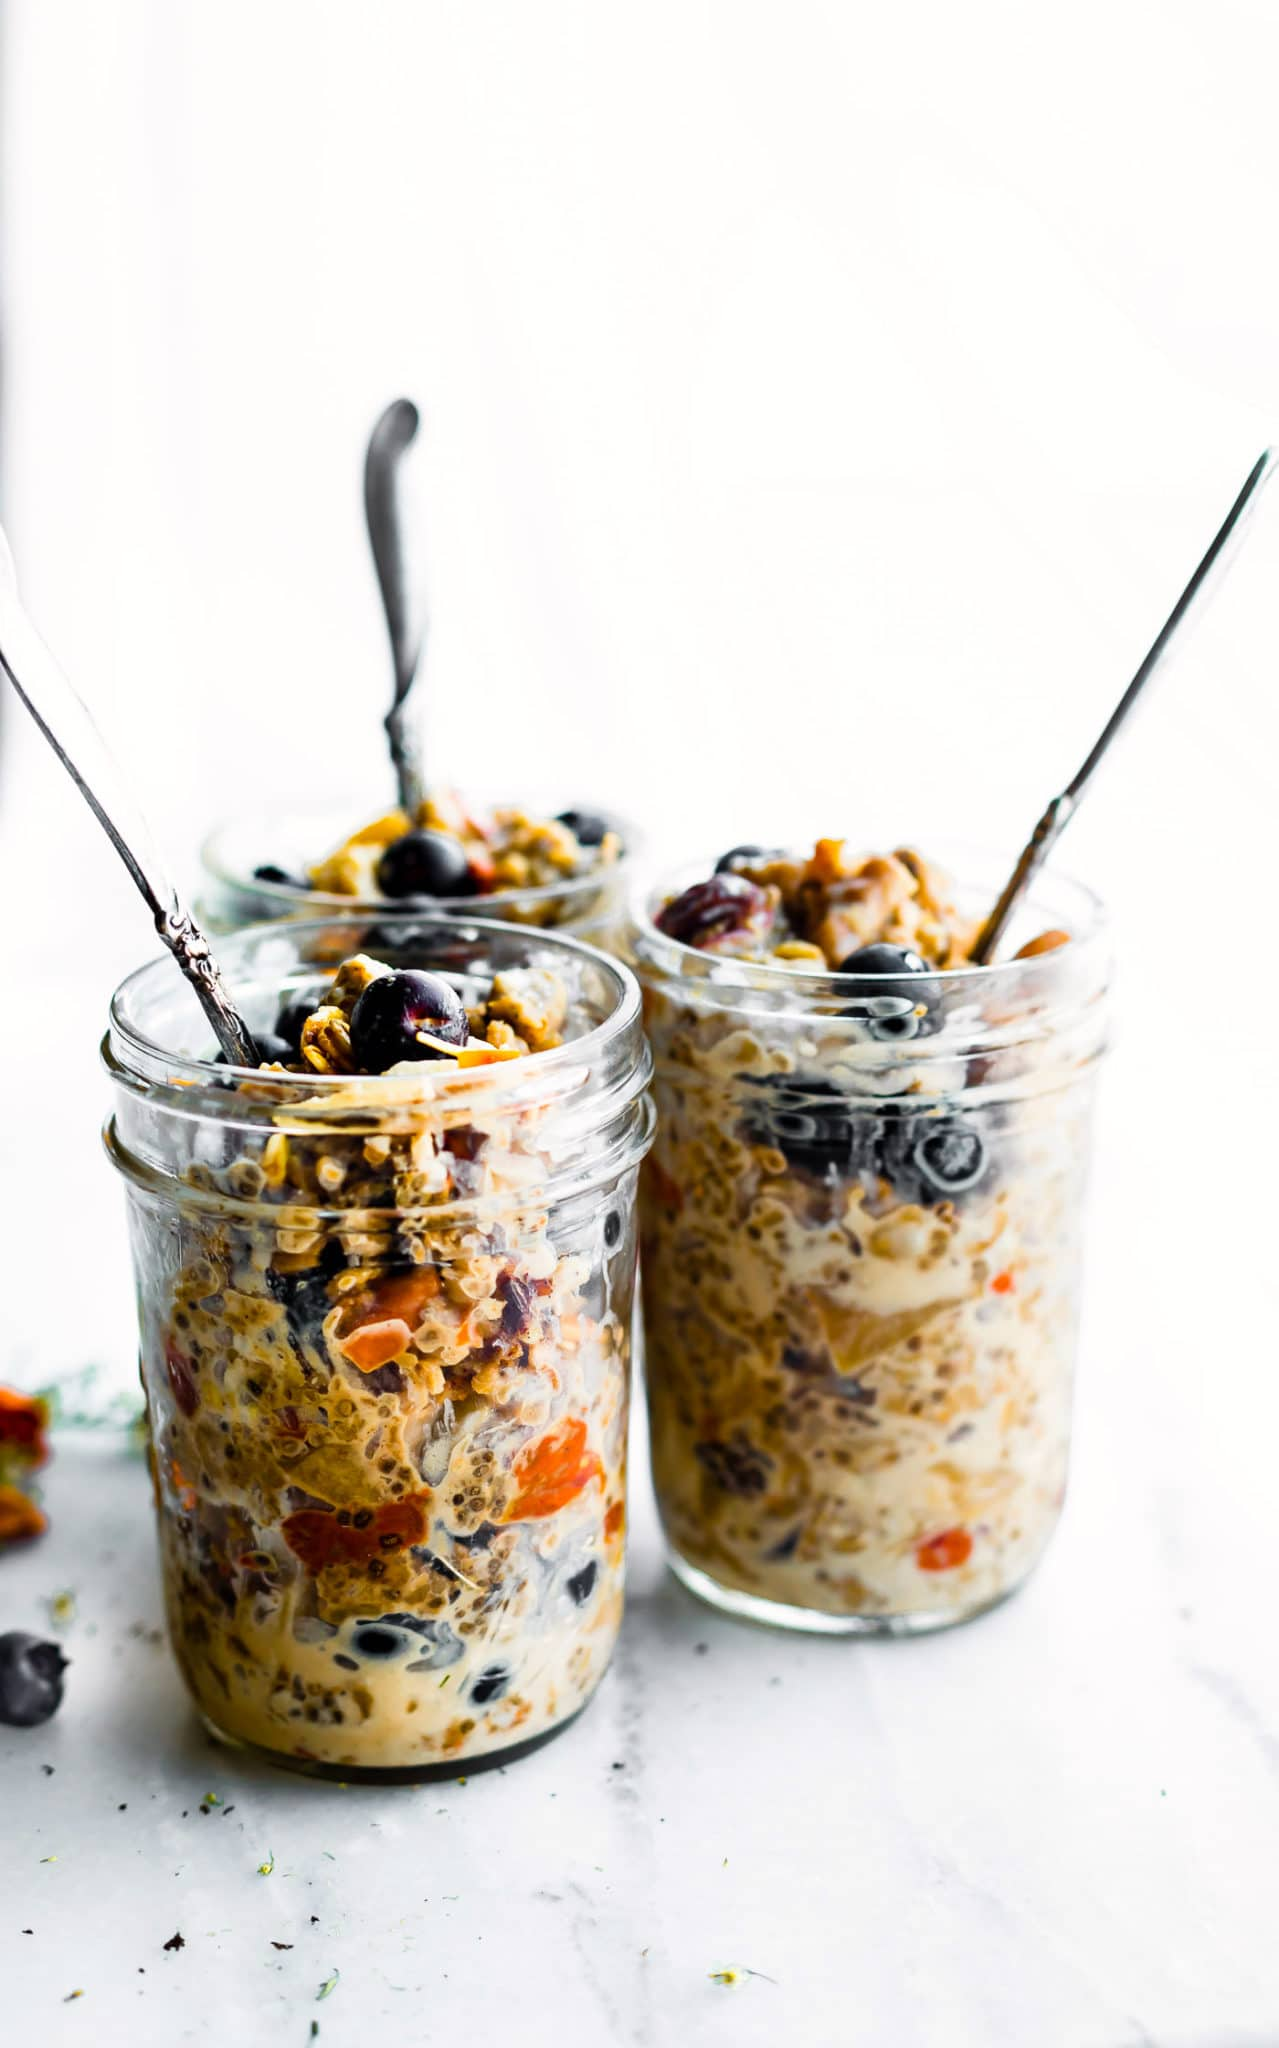 superood instatn pot oatmeal in mason jars topped with berries and served with spoons sticking out of the top